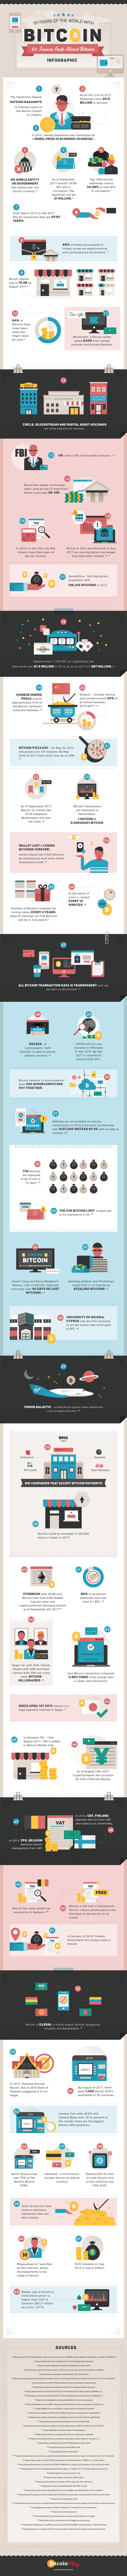 62 facts about bitcoin - product of blockchain